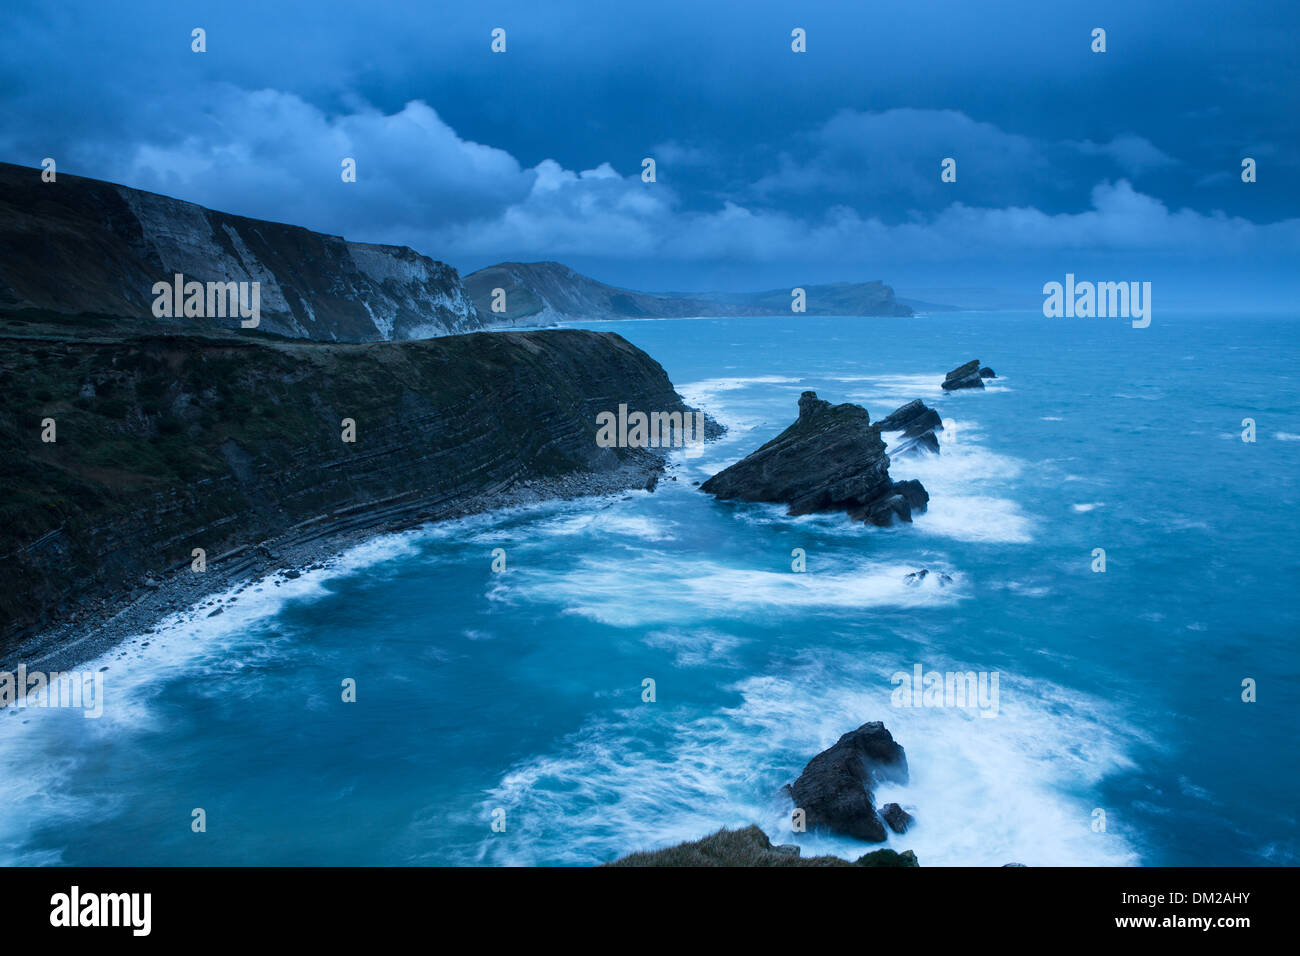 Mupe Bay at dawn on a rough winter morning, Jurassic Coast, Dorset, England - Stock Image